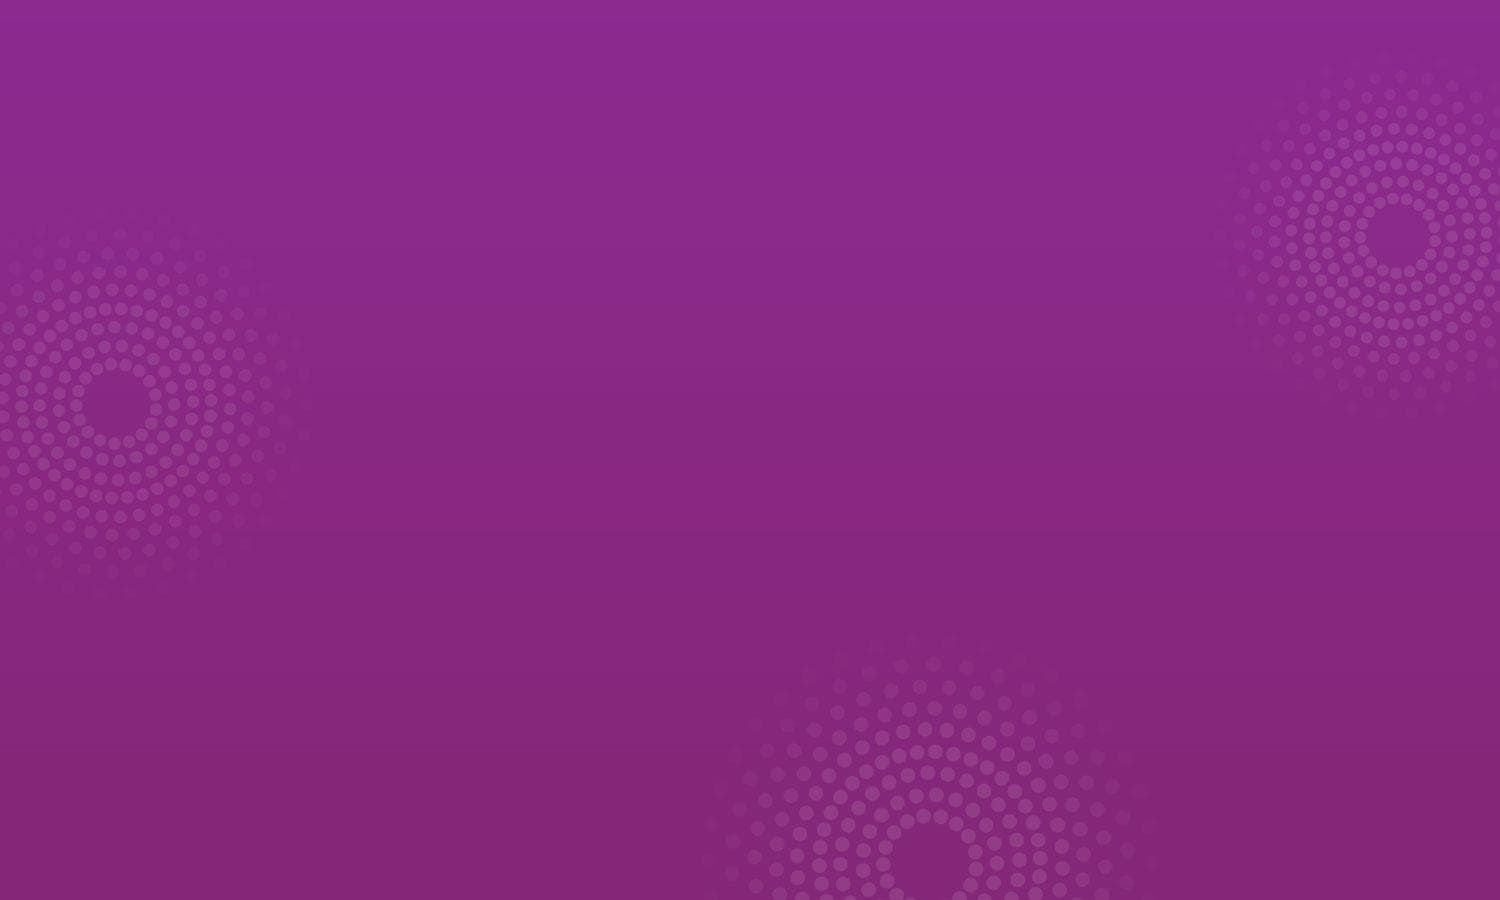 White dots in a circular design on a plum background